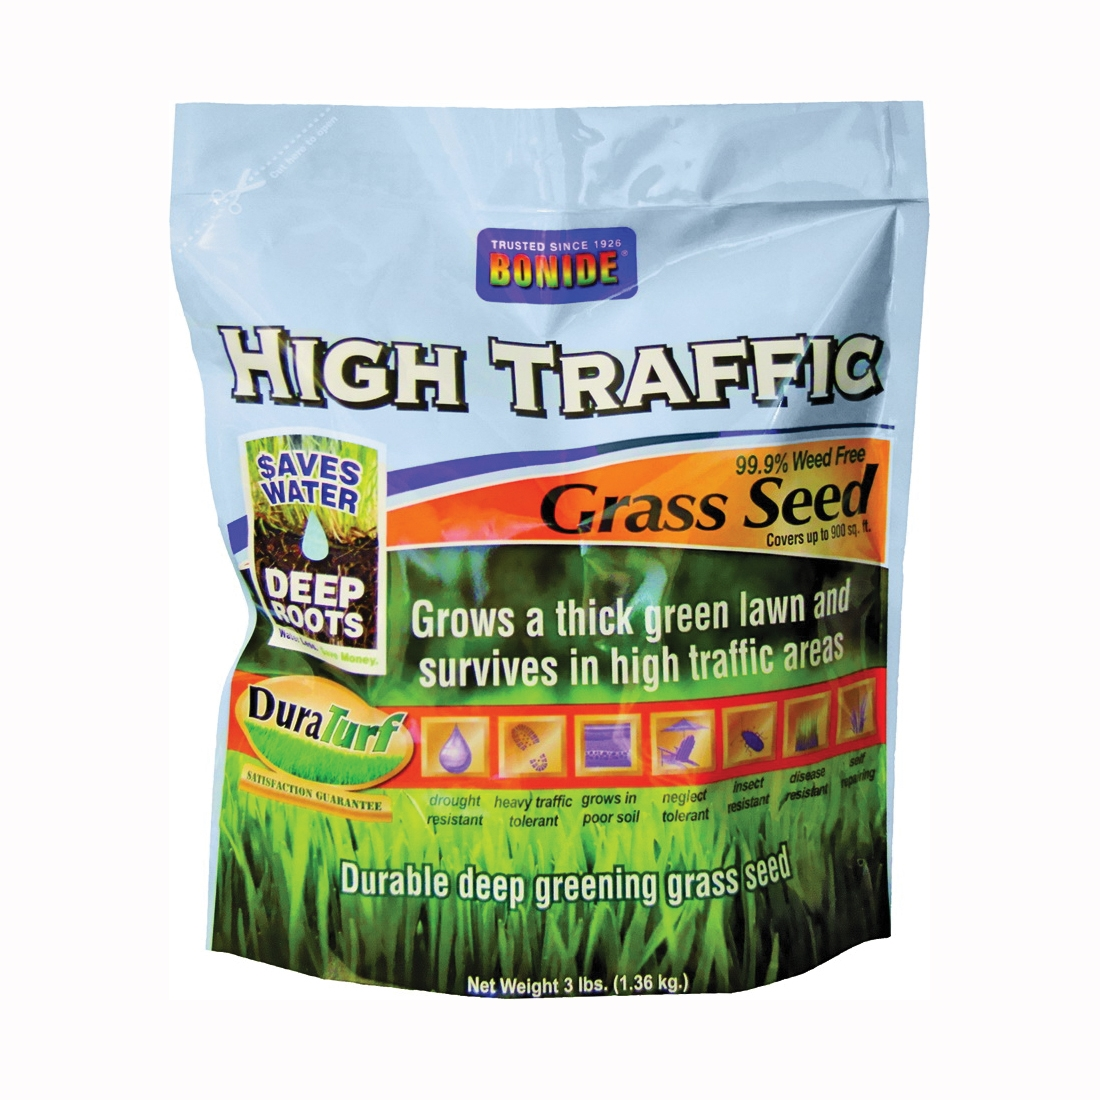 Picture of Bonide 60282 High Traffic Grass Seed, 3 lb Package, Bag